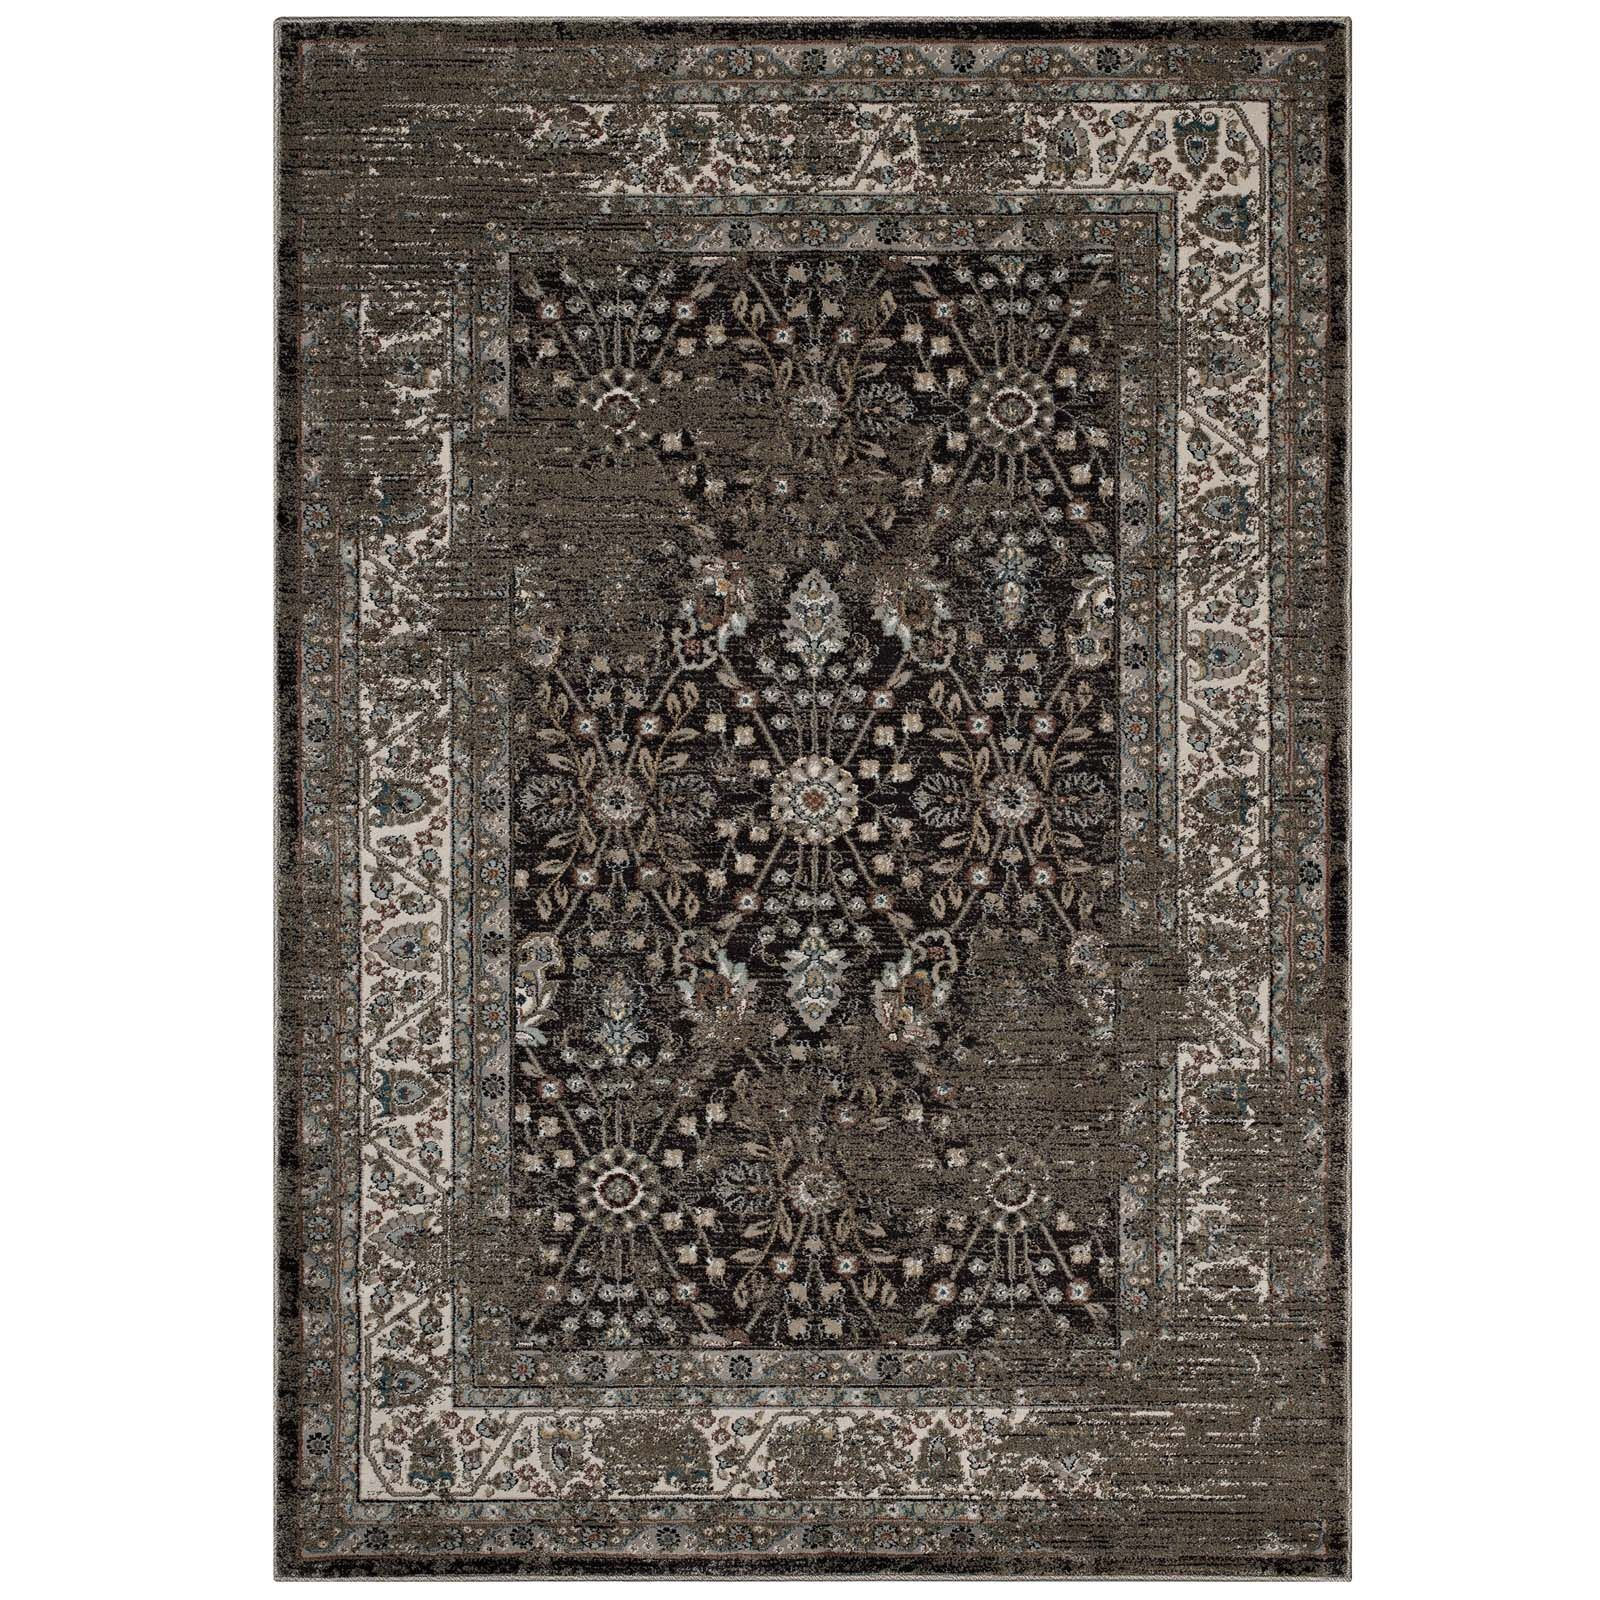 Housley Vintage Beige/Black Area Rug Rug Size: Rectangle 8' x 10'